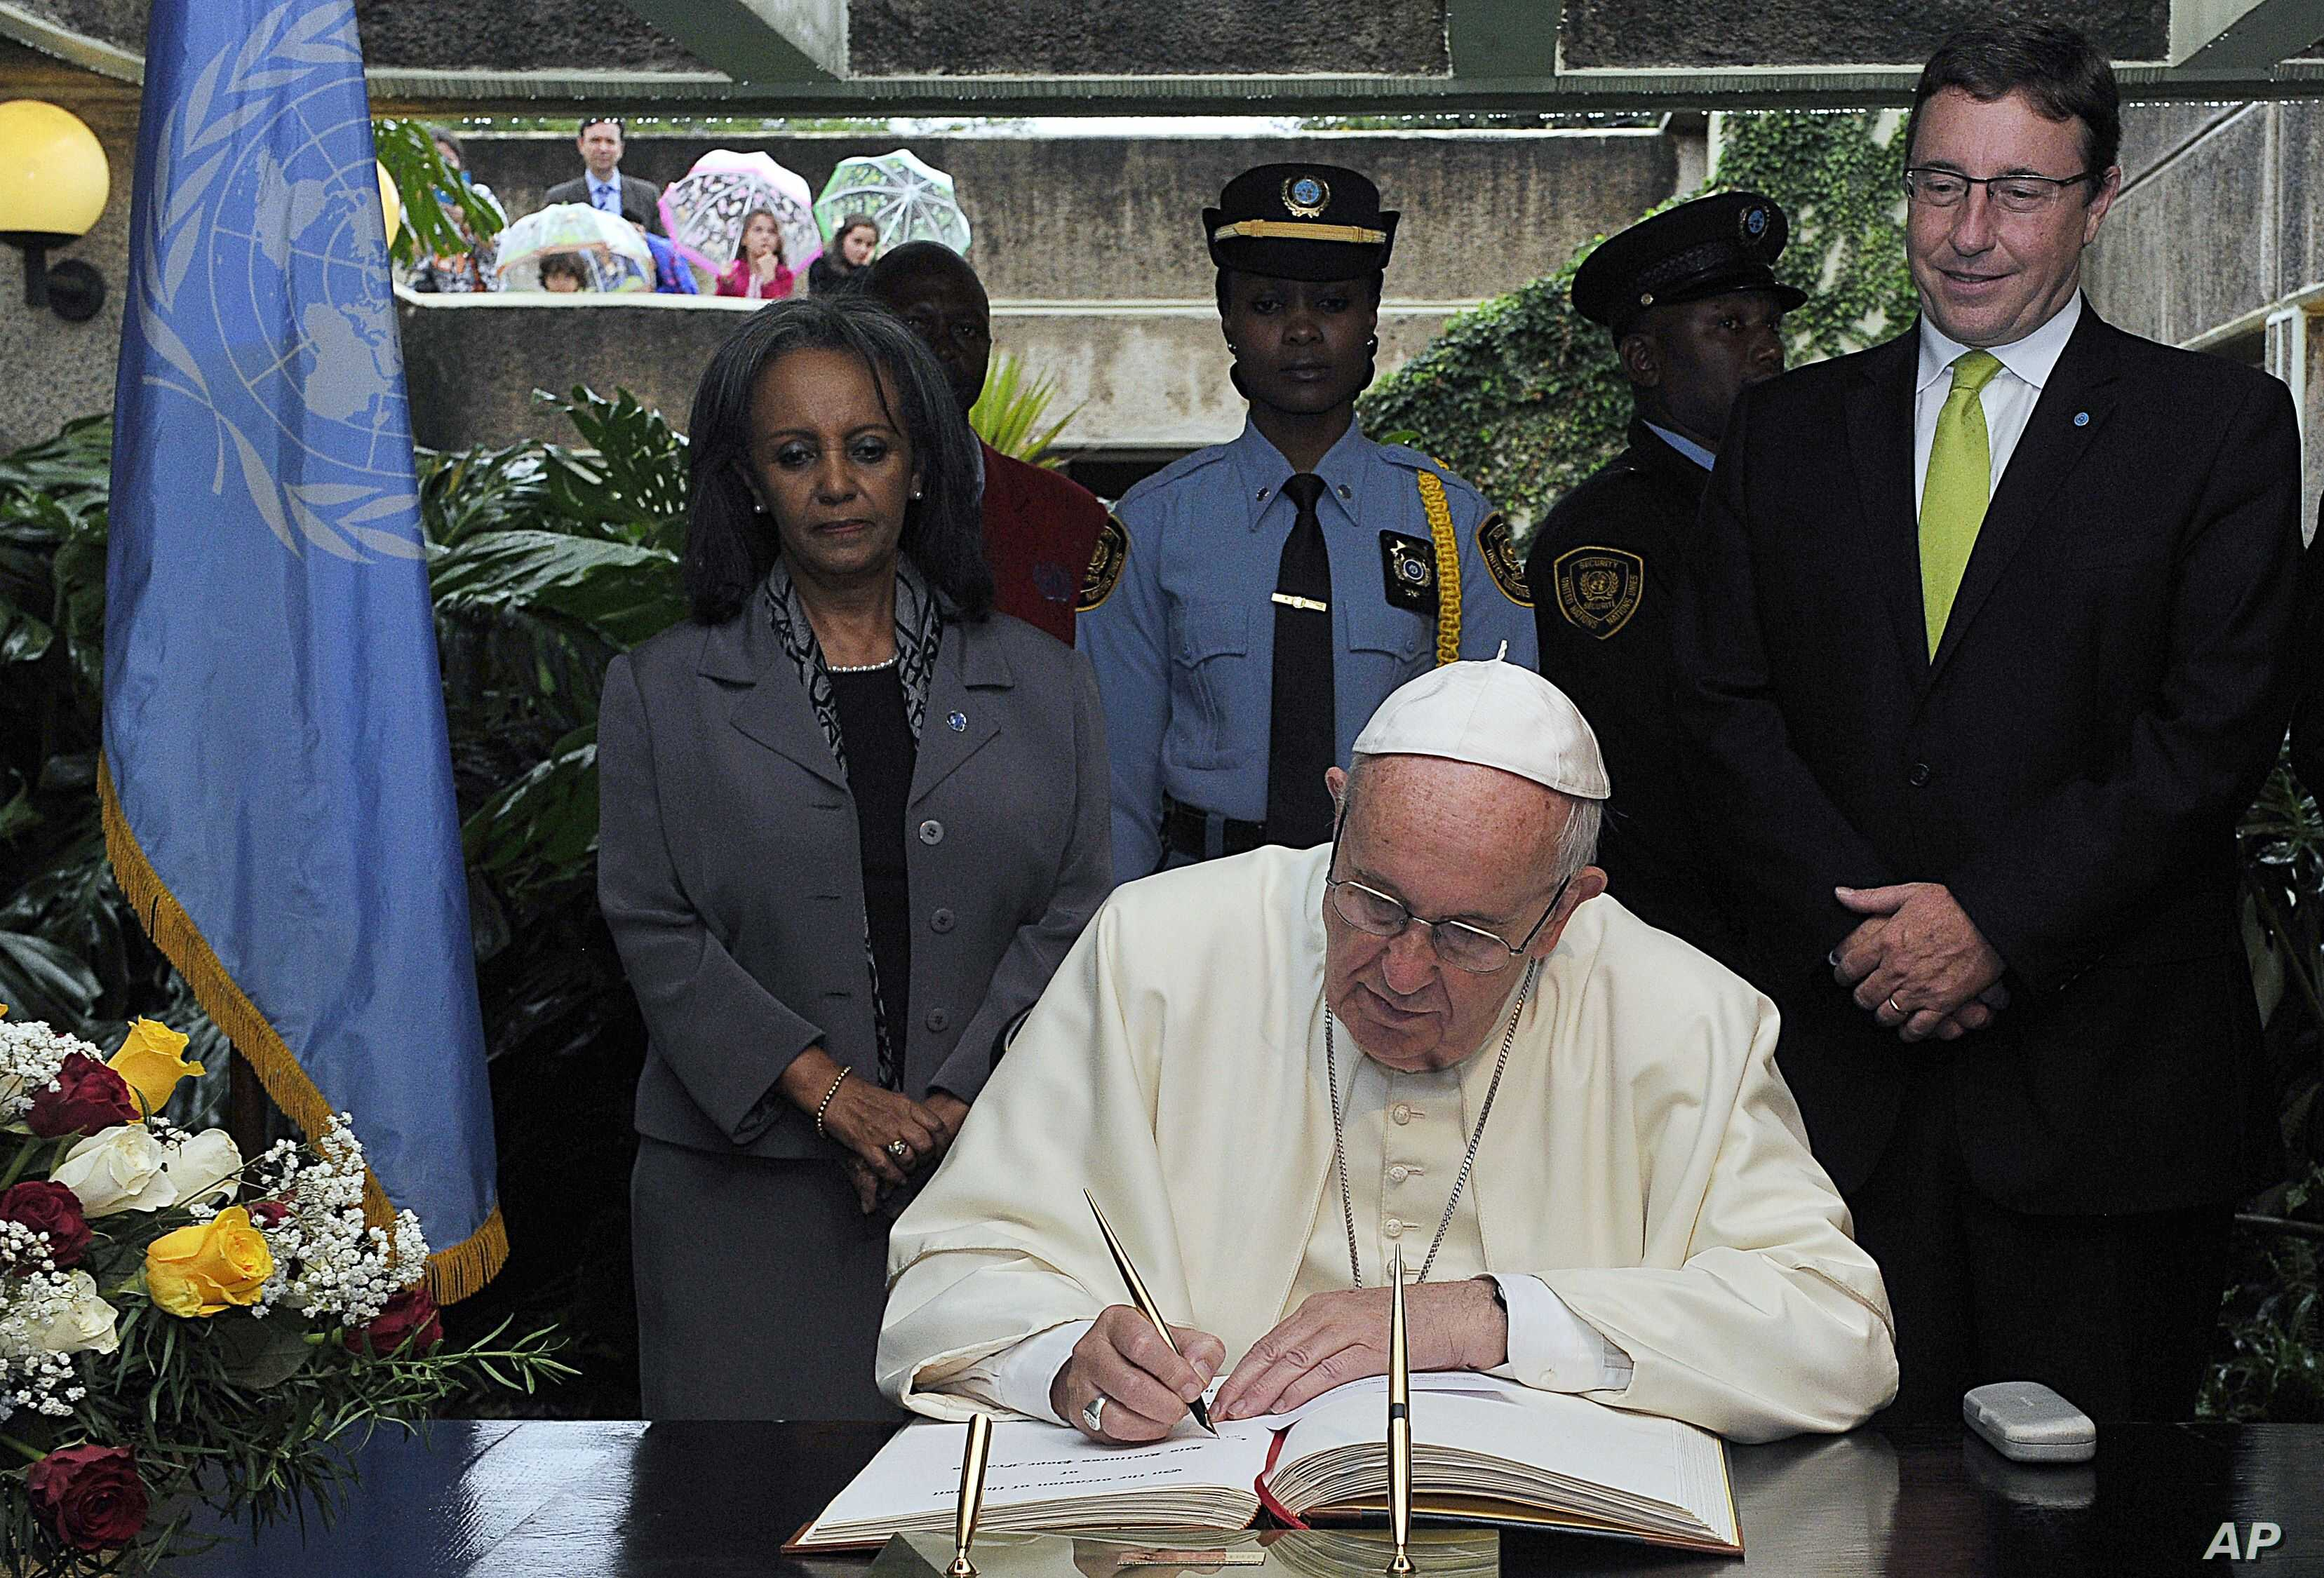 With Achim Steiner, executive director of the U.N. Environment Program, right, looking on, Pope Francis signs the visitors book at the United Nations regional office in Nairobi, Kenya, Nov. 26, 2015.